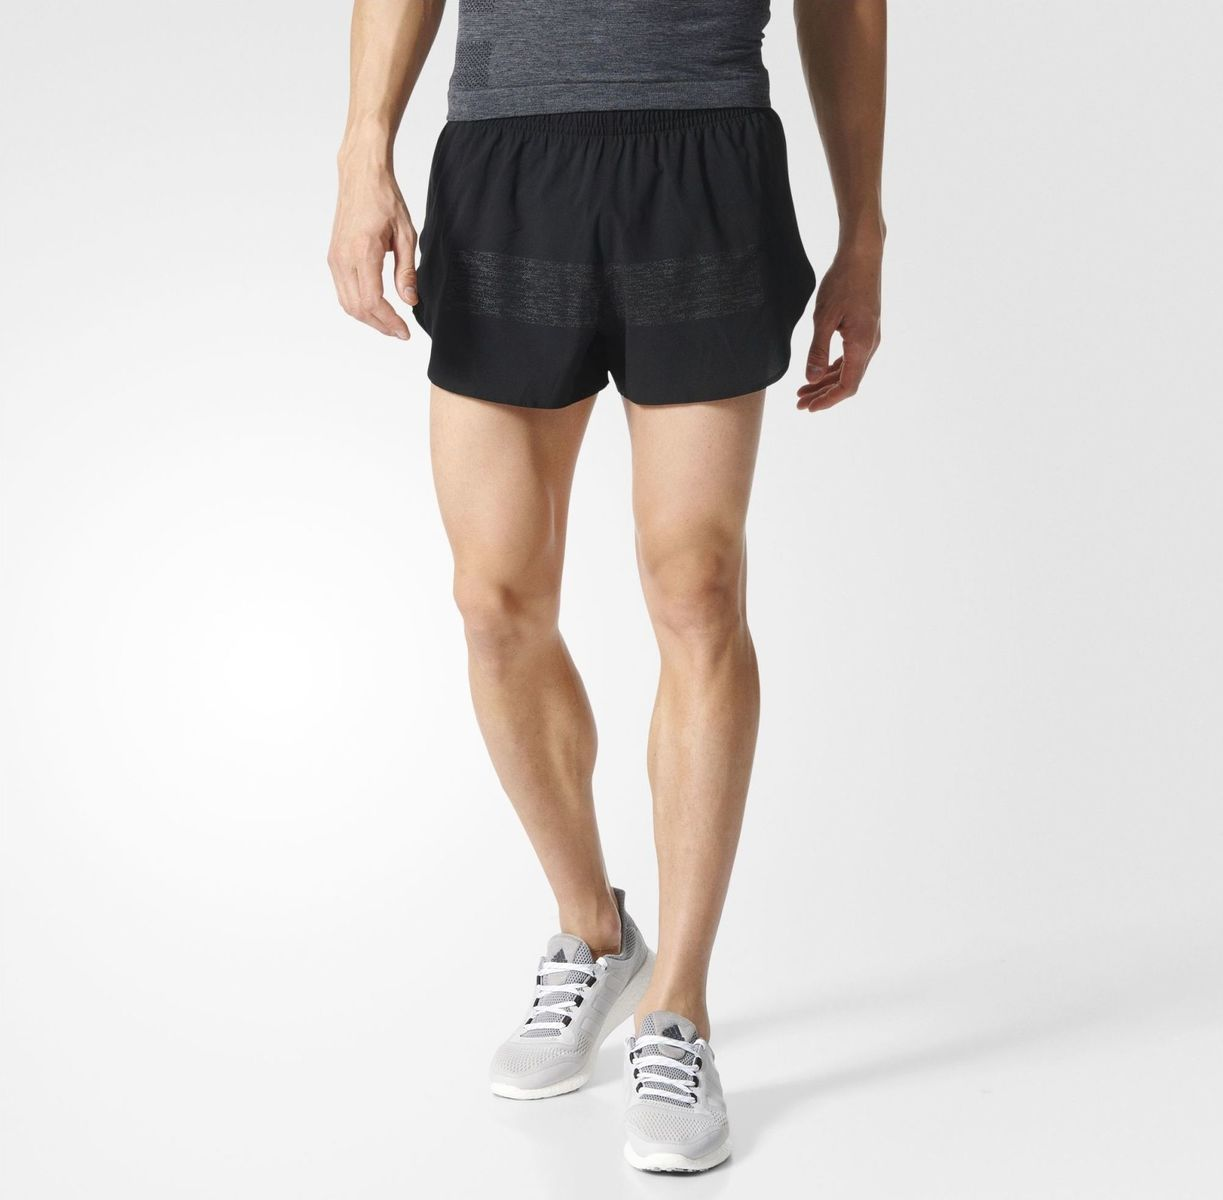 Adidas Supernova 3in Split Shorts Black S94399